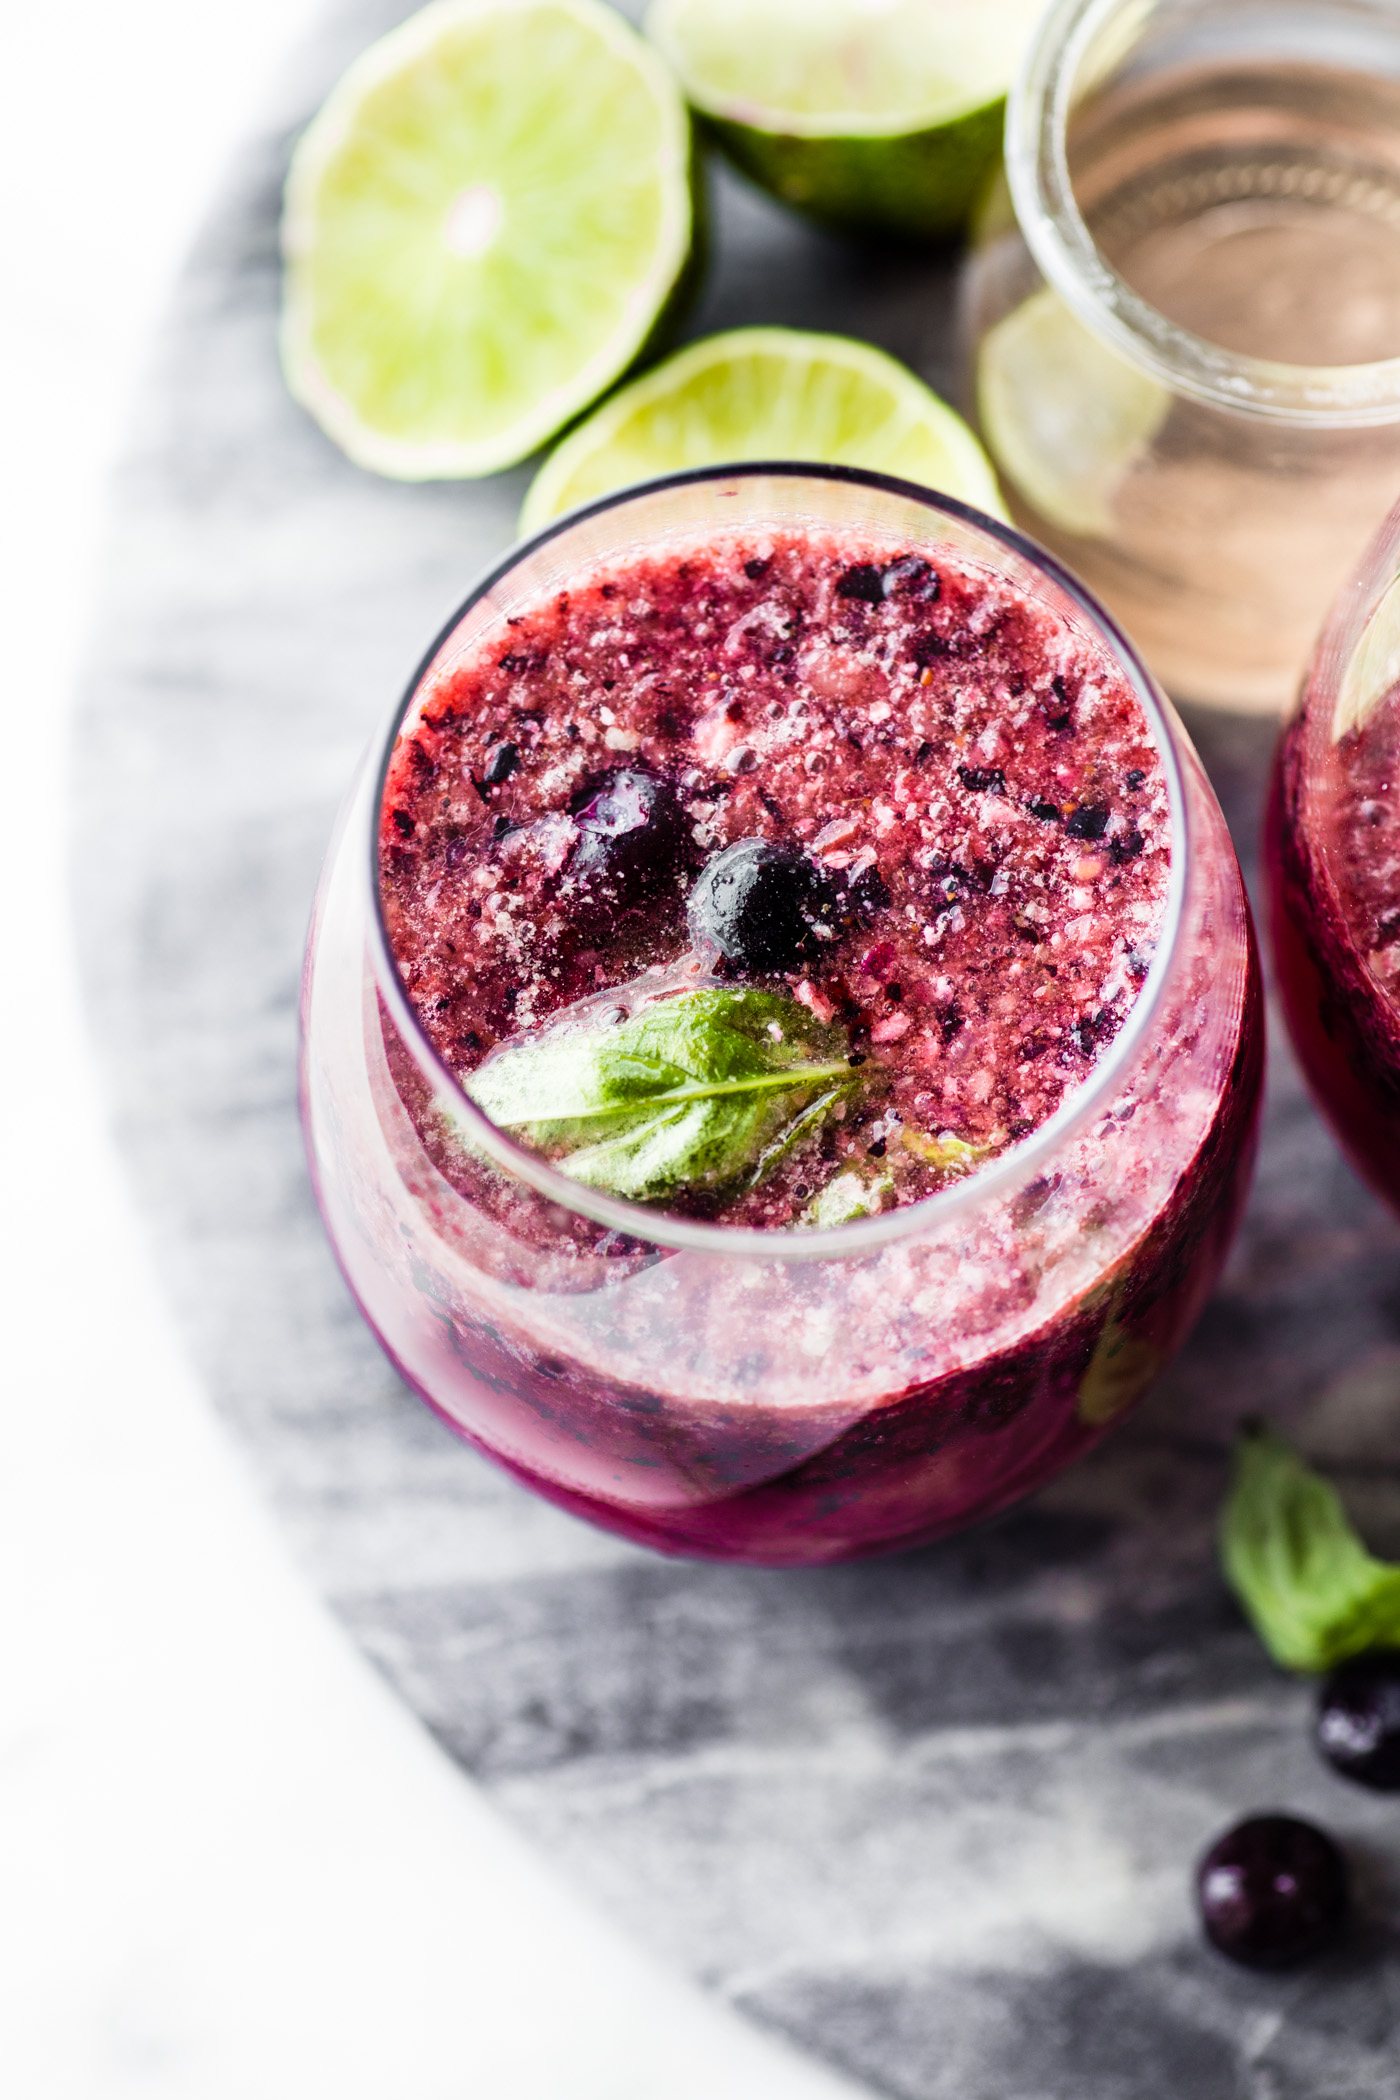 Wine Slushies may be an adults only version of a Slurpee, but this Berry Frosé recipe is lighter, more sophisticated, and BLISSFULLY delicious! Triple Berry Frosé (aka Frozen Rosé wine) wine slushie is blended with fruit, fresh juice, and a hint of basil, creating a fun and refreshing summer cocktail!